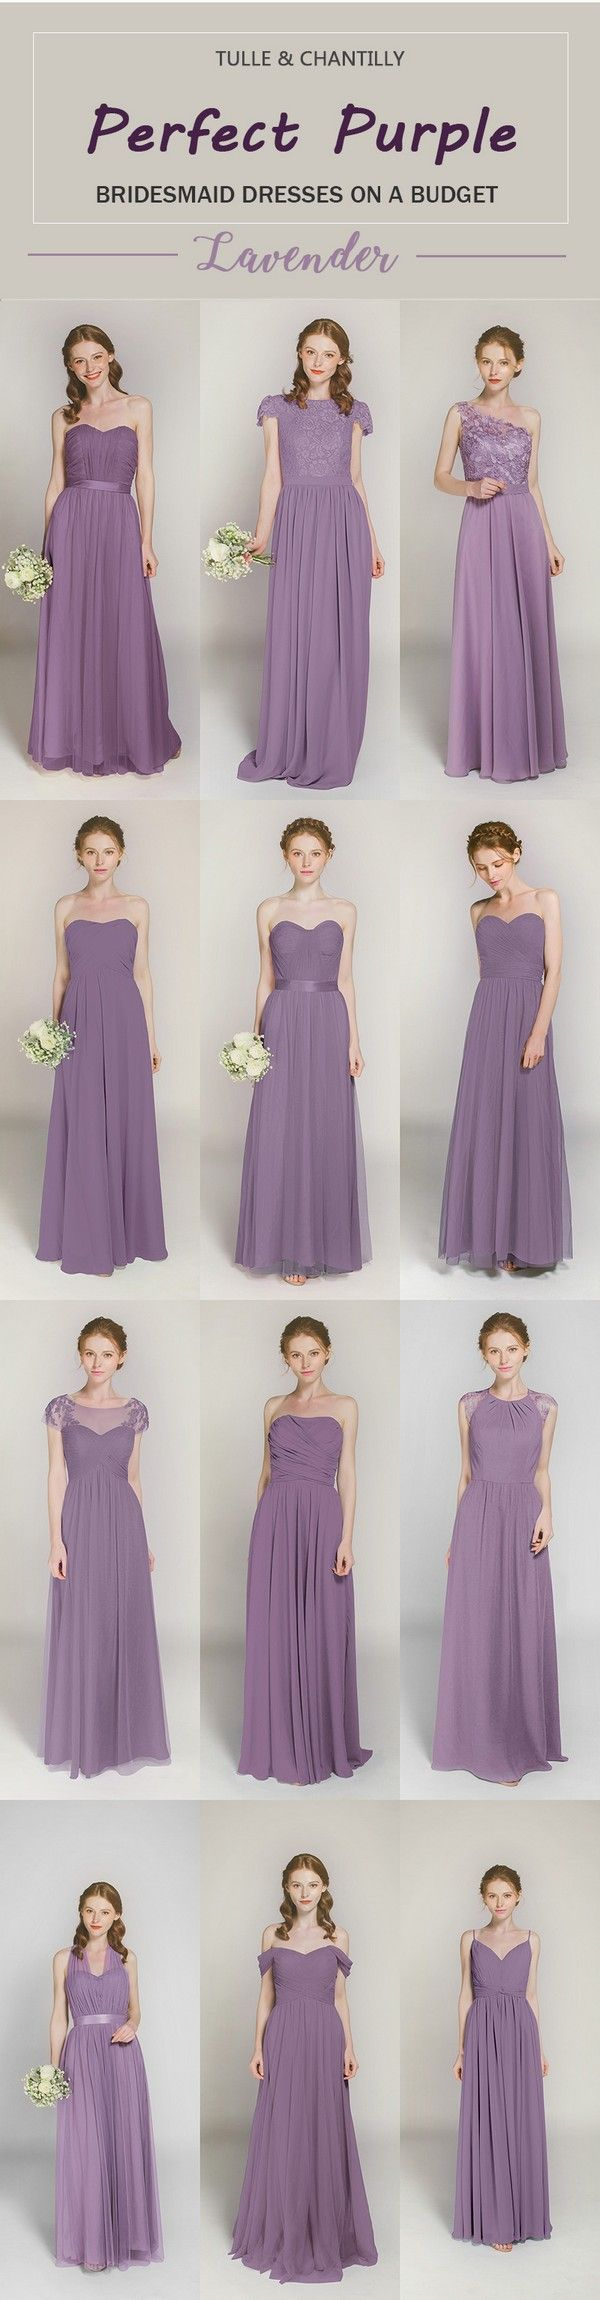 affordable lavender long bridesmaid dresses-click to see 44 more colors